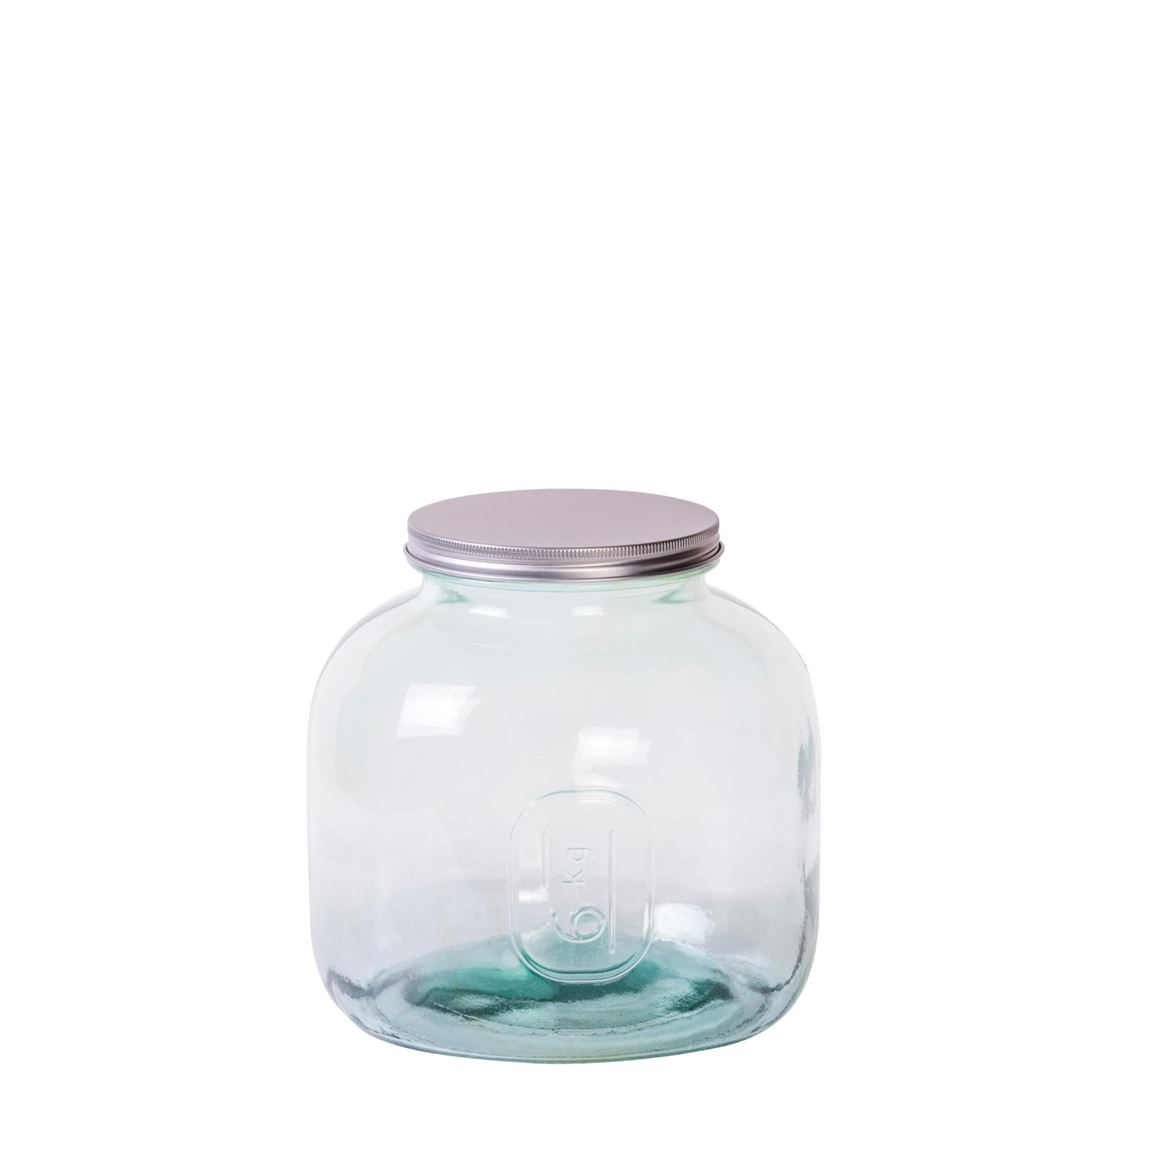 CAPACITY Bocal transparent H 23 cm; Ø 20 cm_capacity-bocal-transparent-h-23-cm;-ø-20-cm